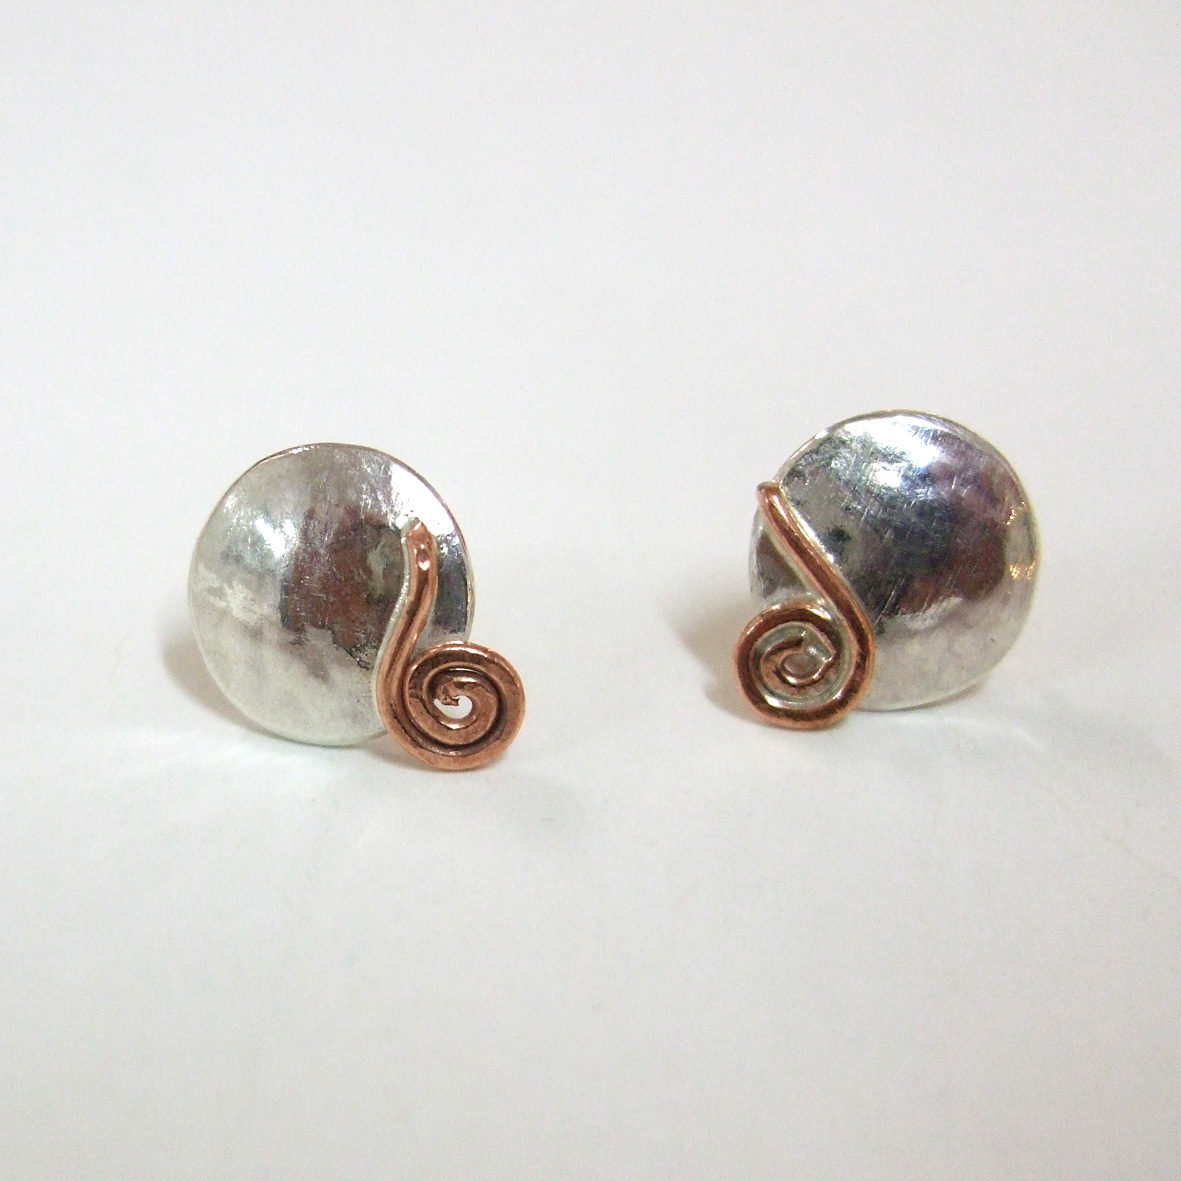 Copper and sterling silver coil studs